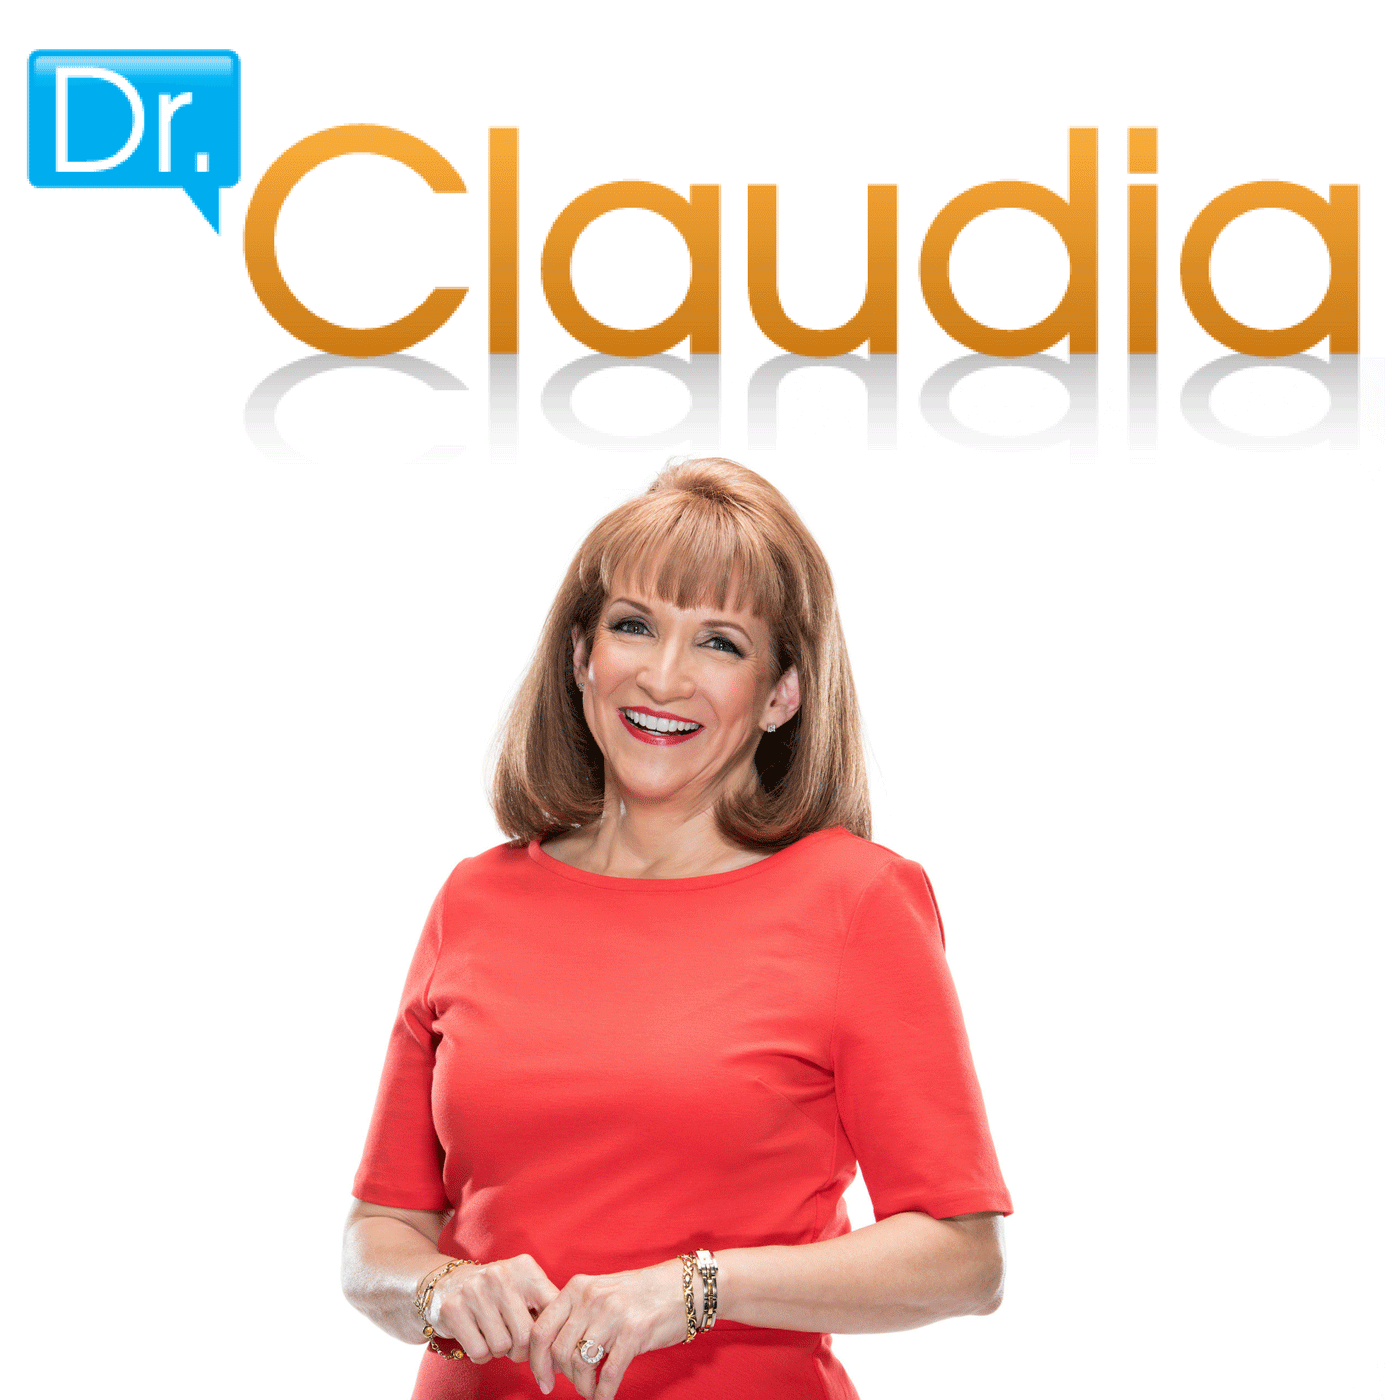 The Dr. Claudia Show